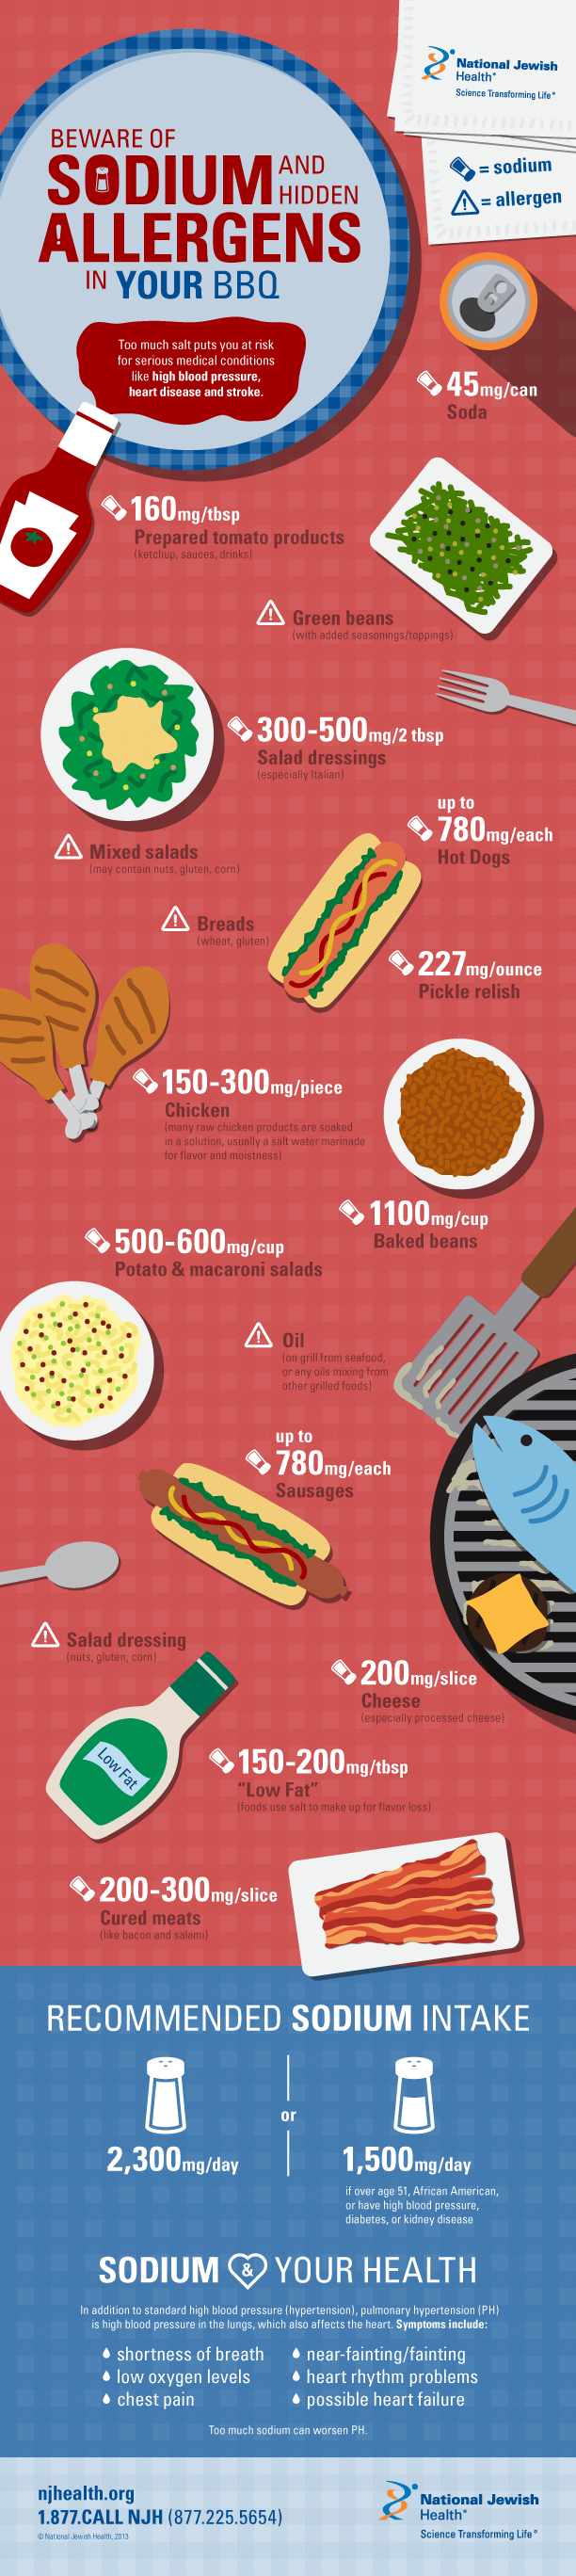 hidden sodium and allergens in BBQs